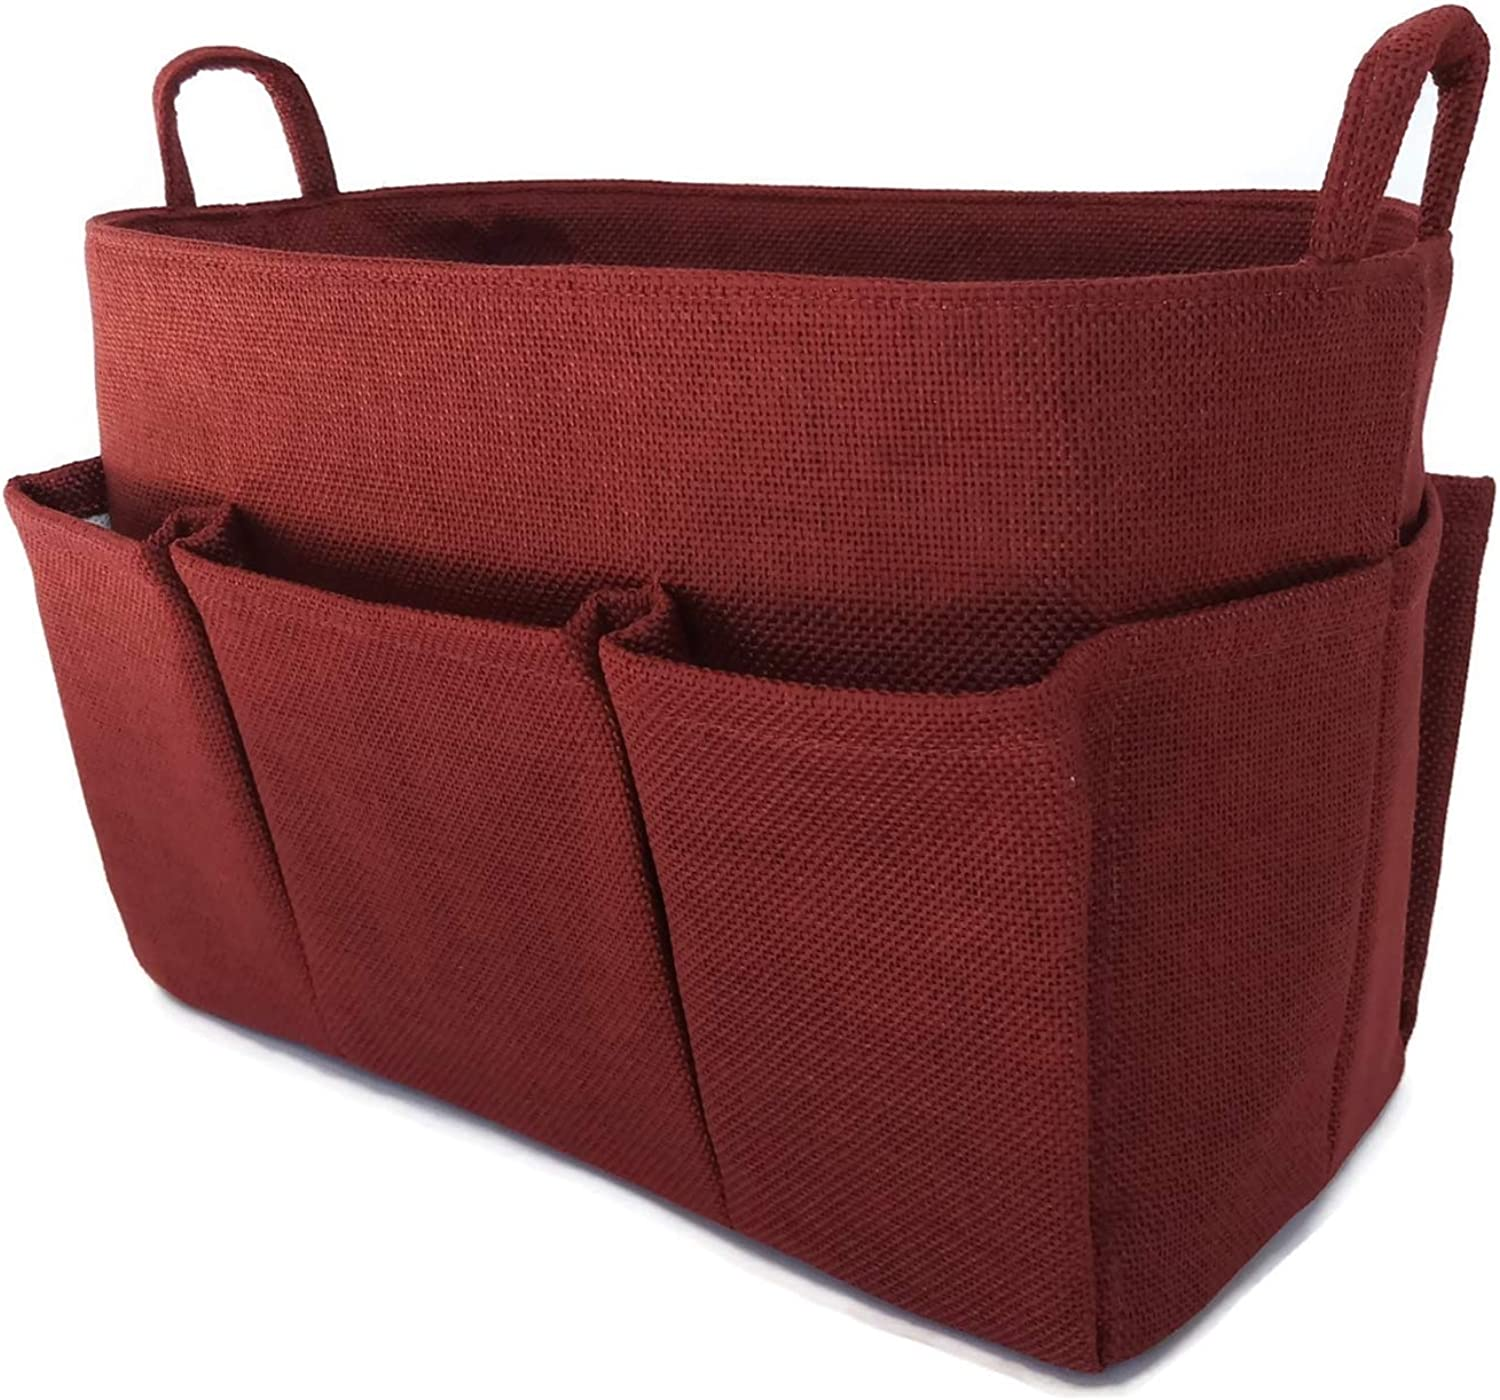 K&M Quality Product Purse Organizer Insert Medium Handbag Tote Bag 10  Pockets Lightweight Inside Sturdy LV Speedy 30 (Wine Red)